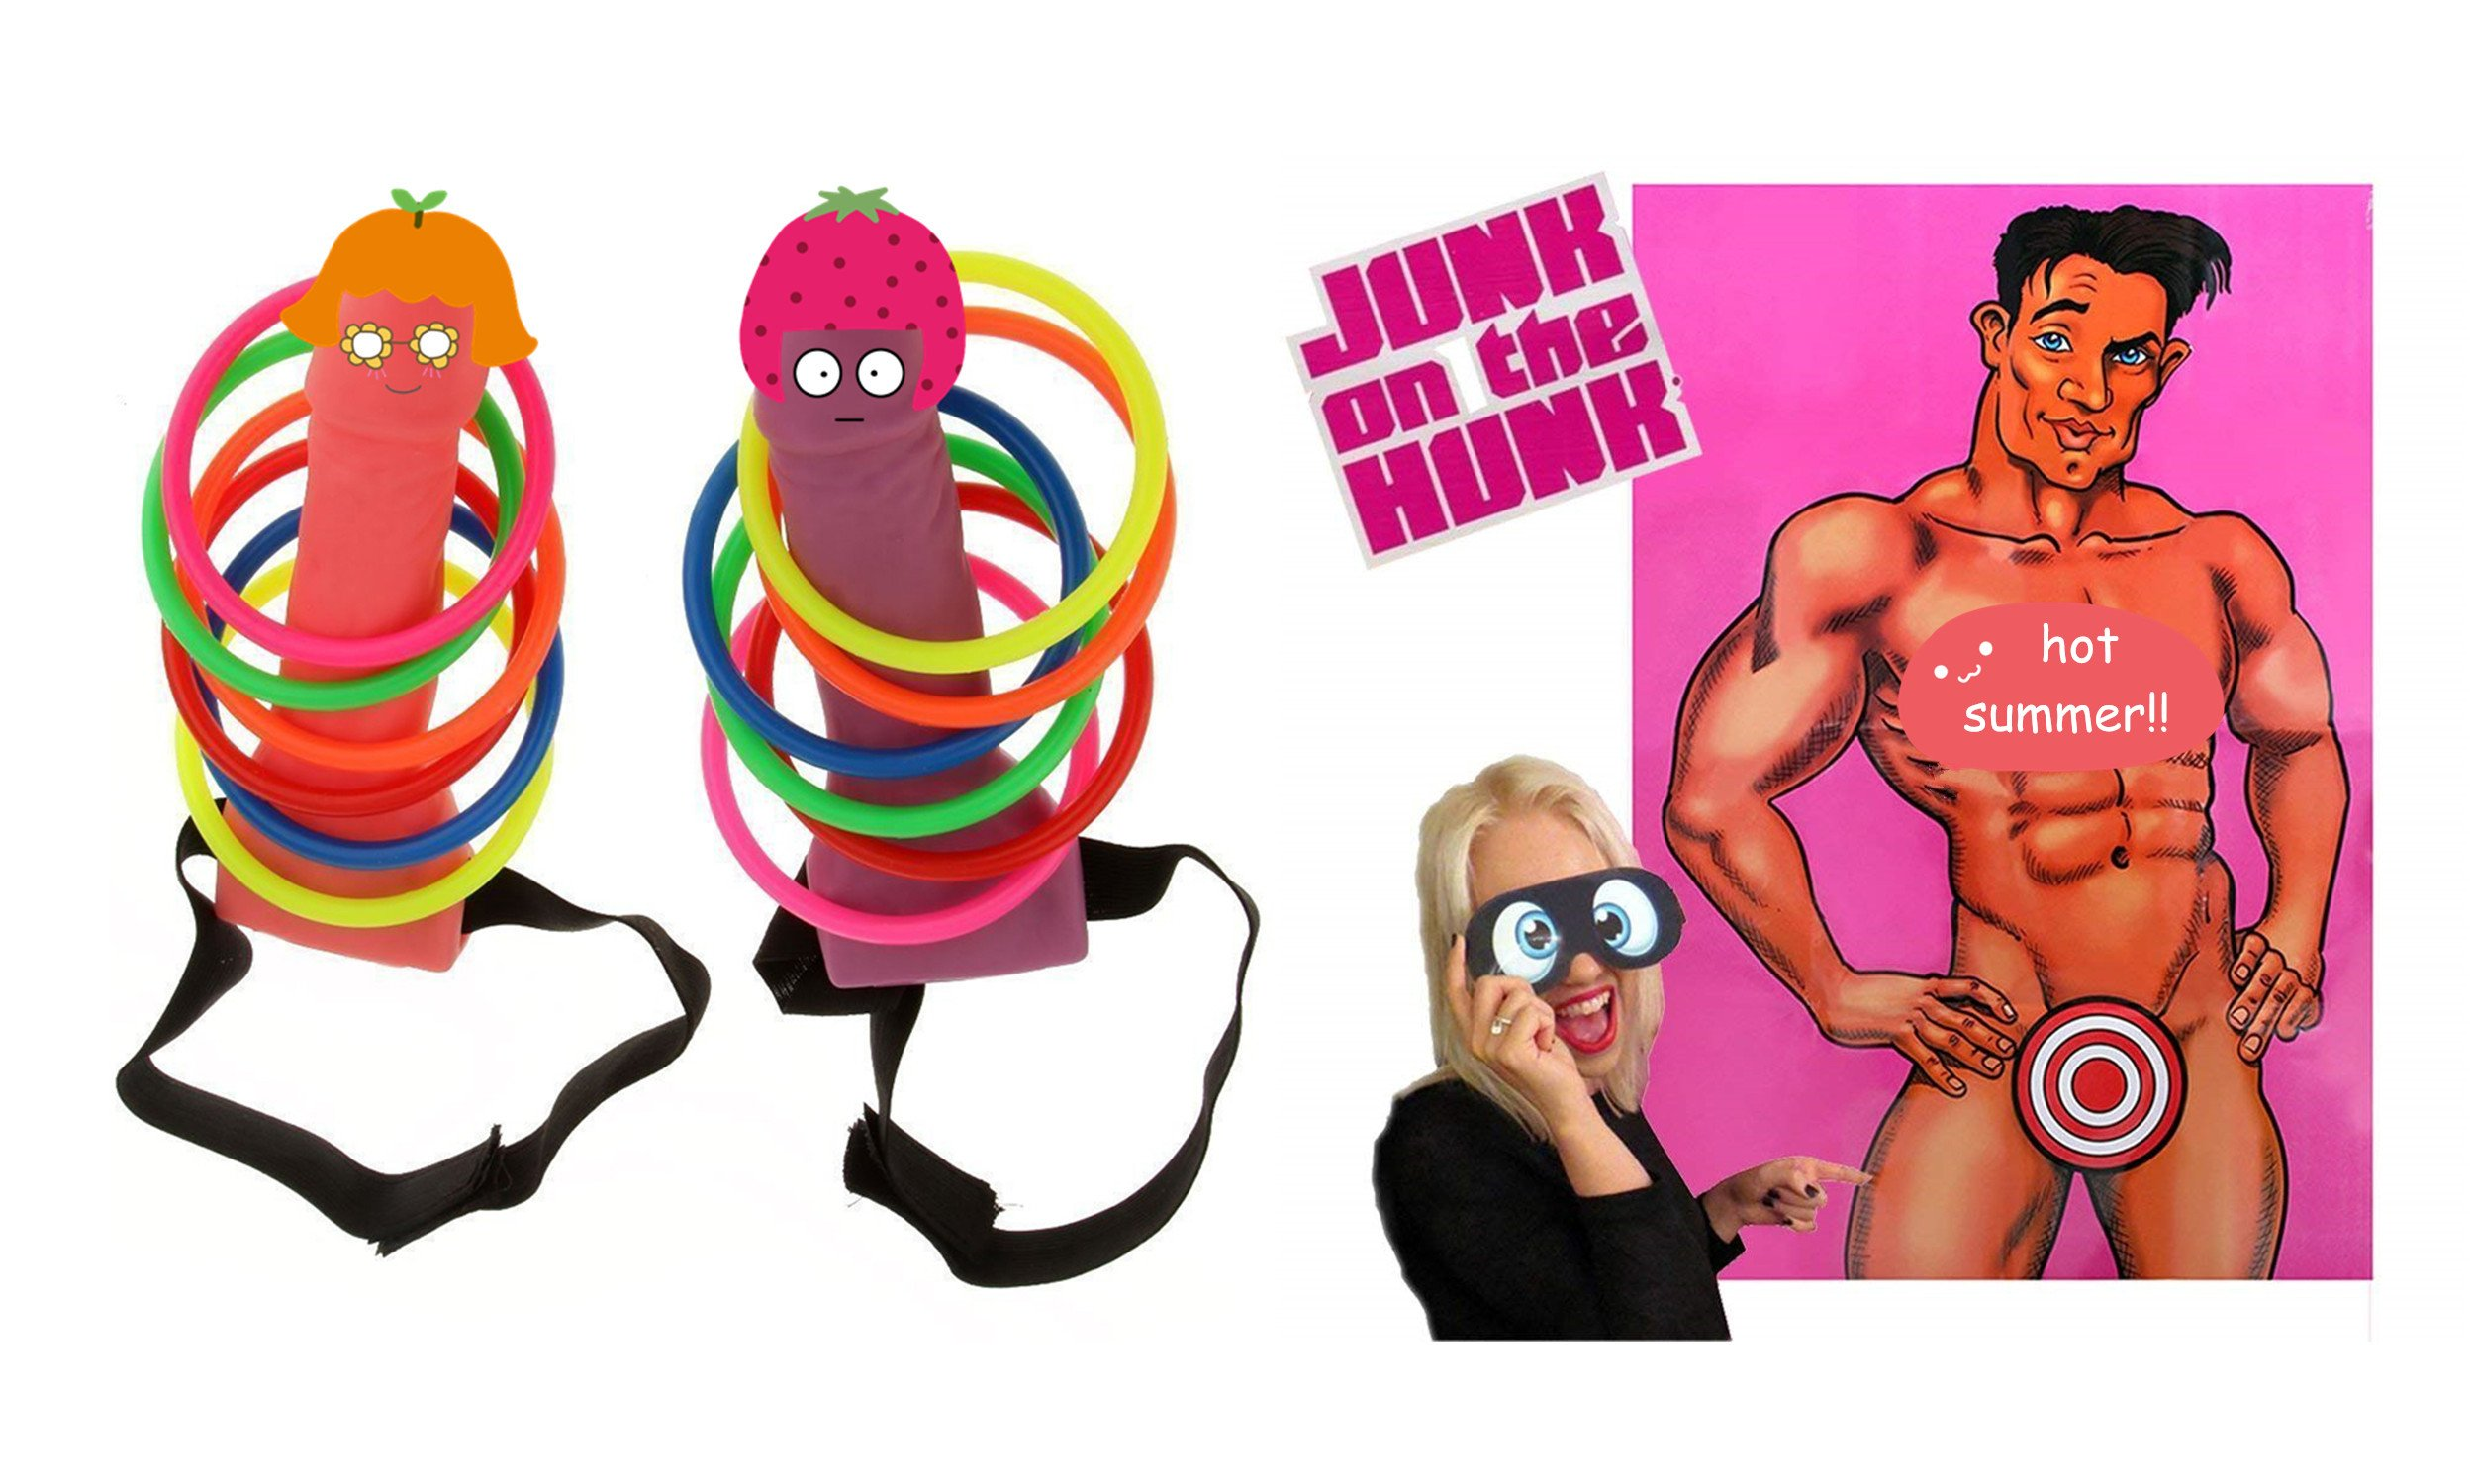 Bachelorette Party Games - Pin the Junk on the Hunk, Funny Ring Toss, Perfect for Bachelorette Party Decorations, 21st Birthday Party & Bridal Showers